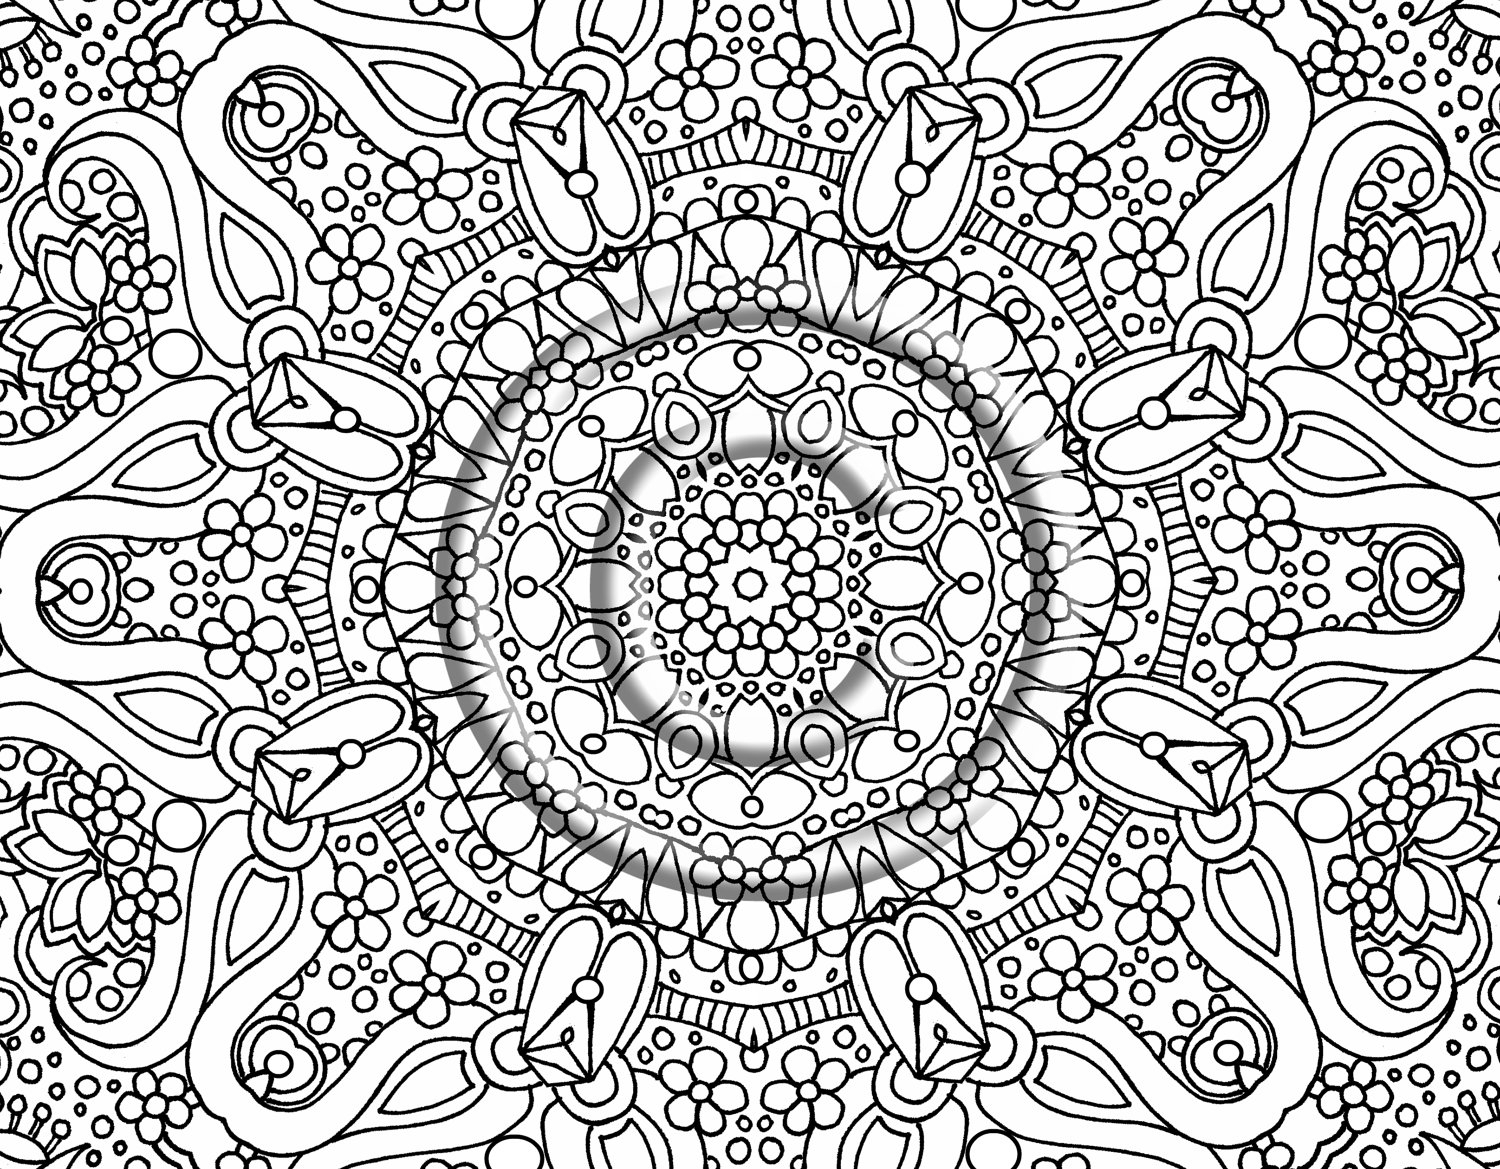 1500x1169 Best Of Coloring Pages For Adults Difficult Abstract Free